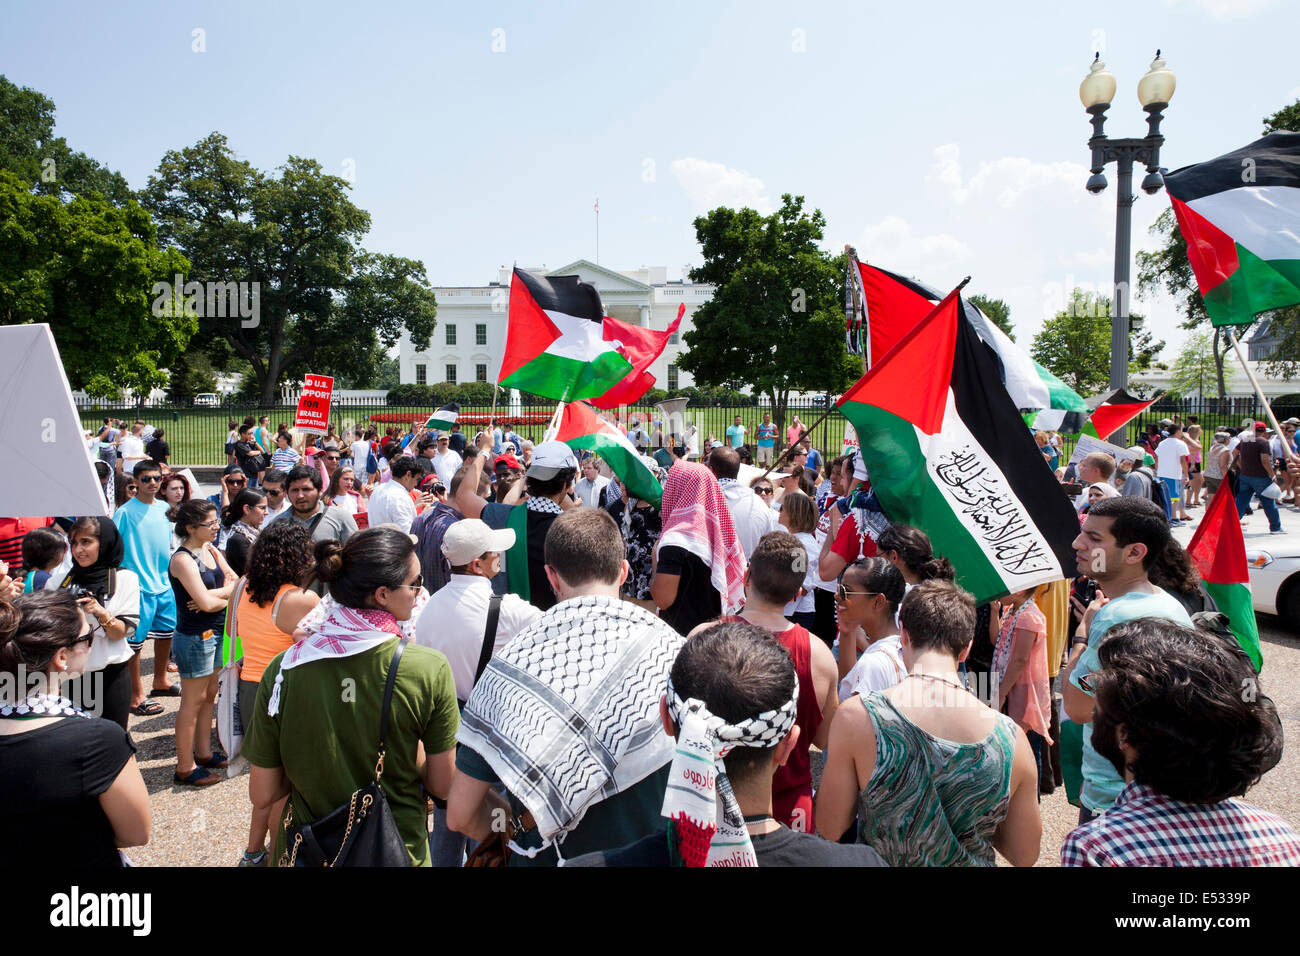 Palestinian-Americans gather in front of the White House to urge more action against Israel from Obama - Washington, - Stock Image